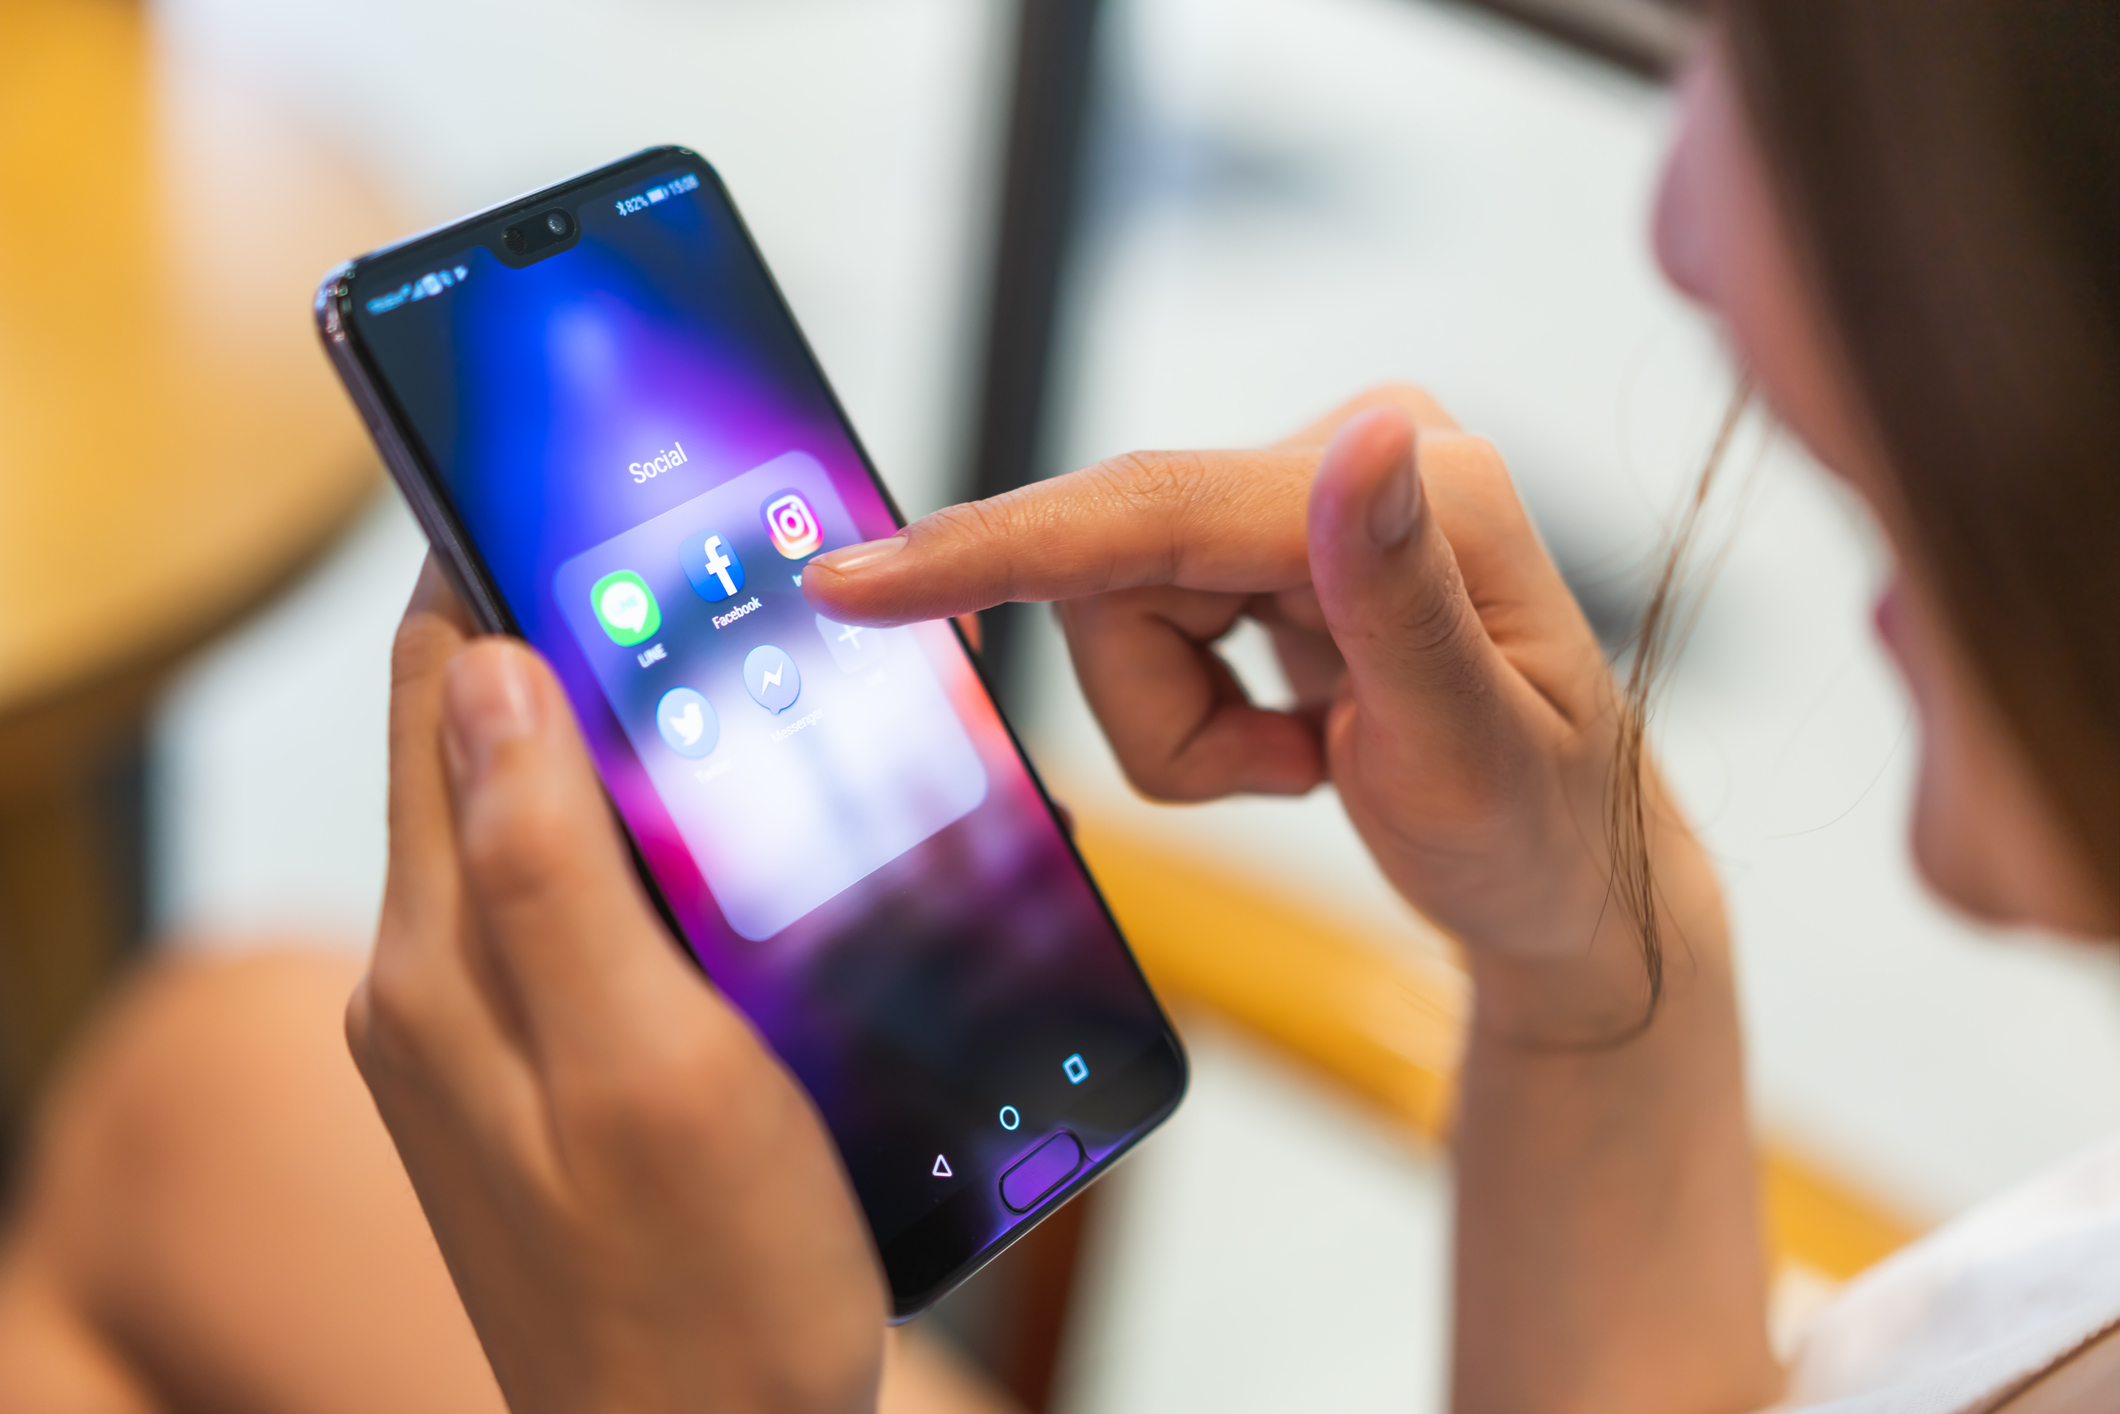 Stock photo of a smartphone